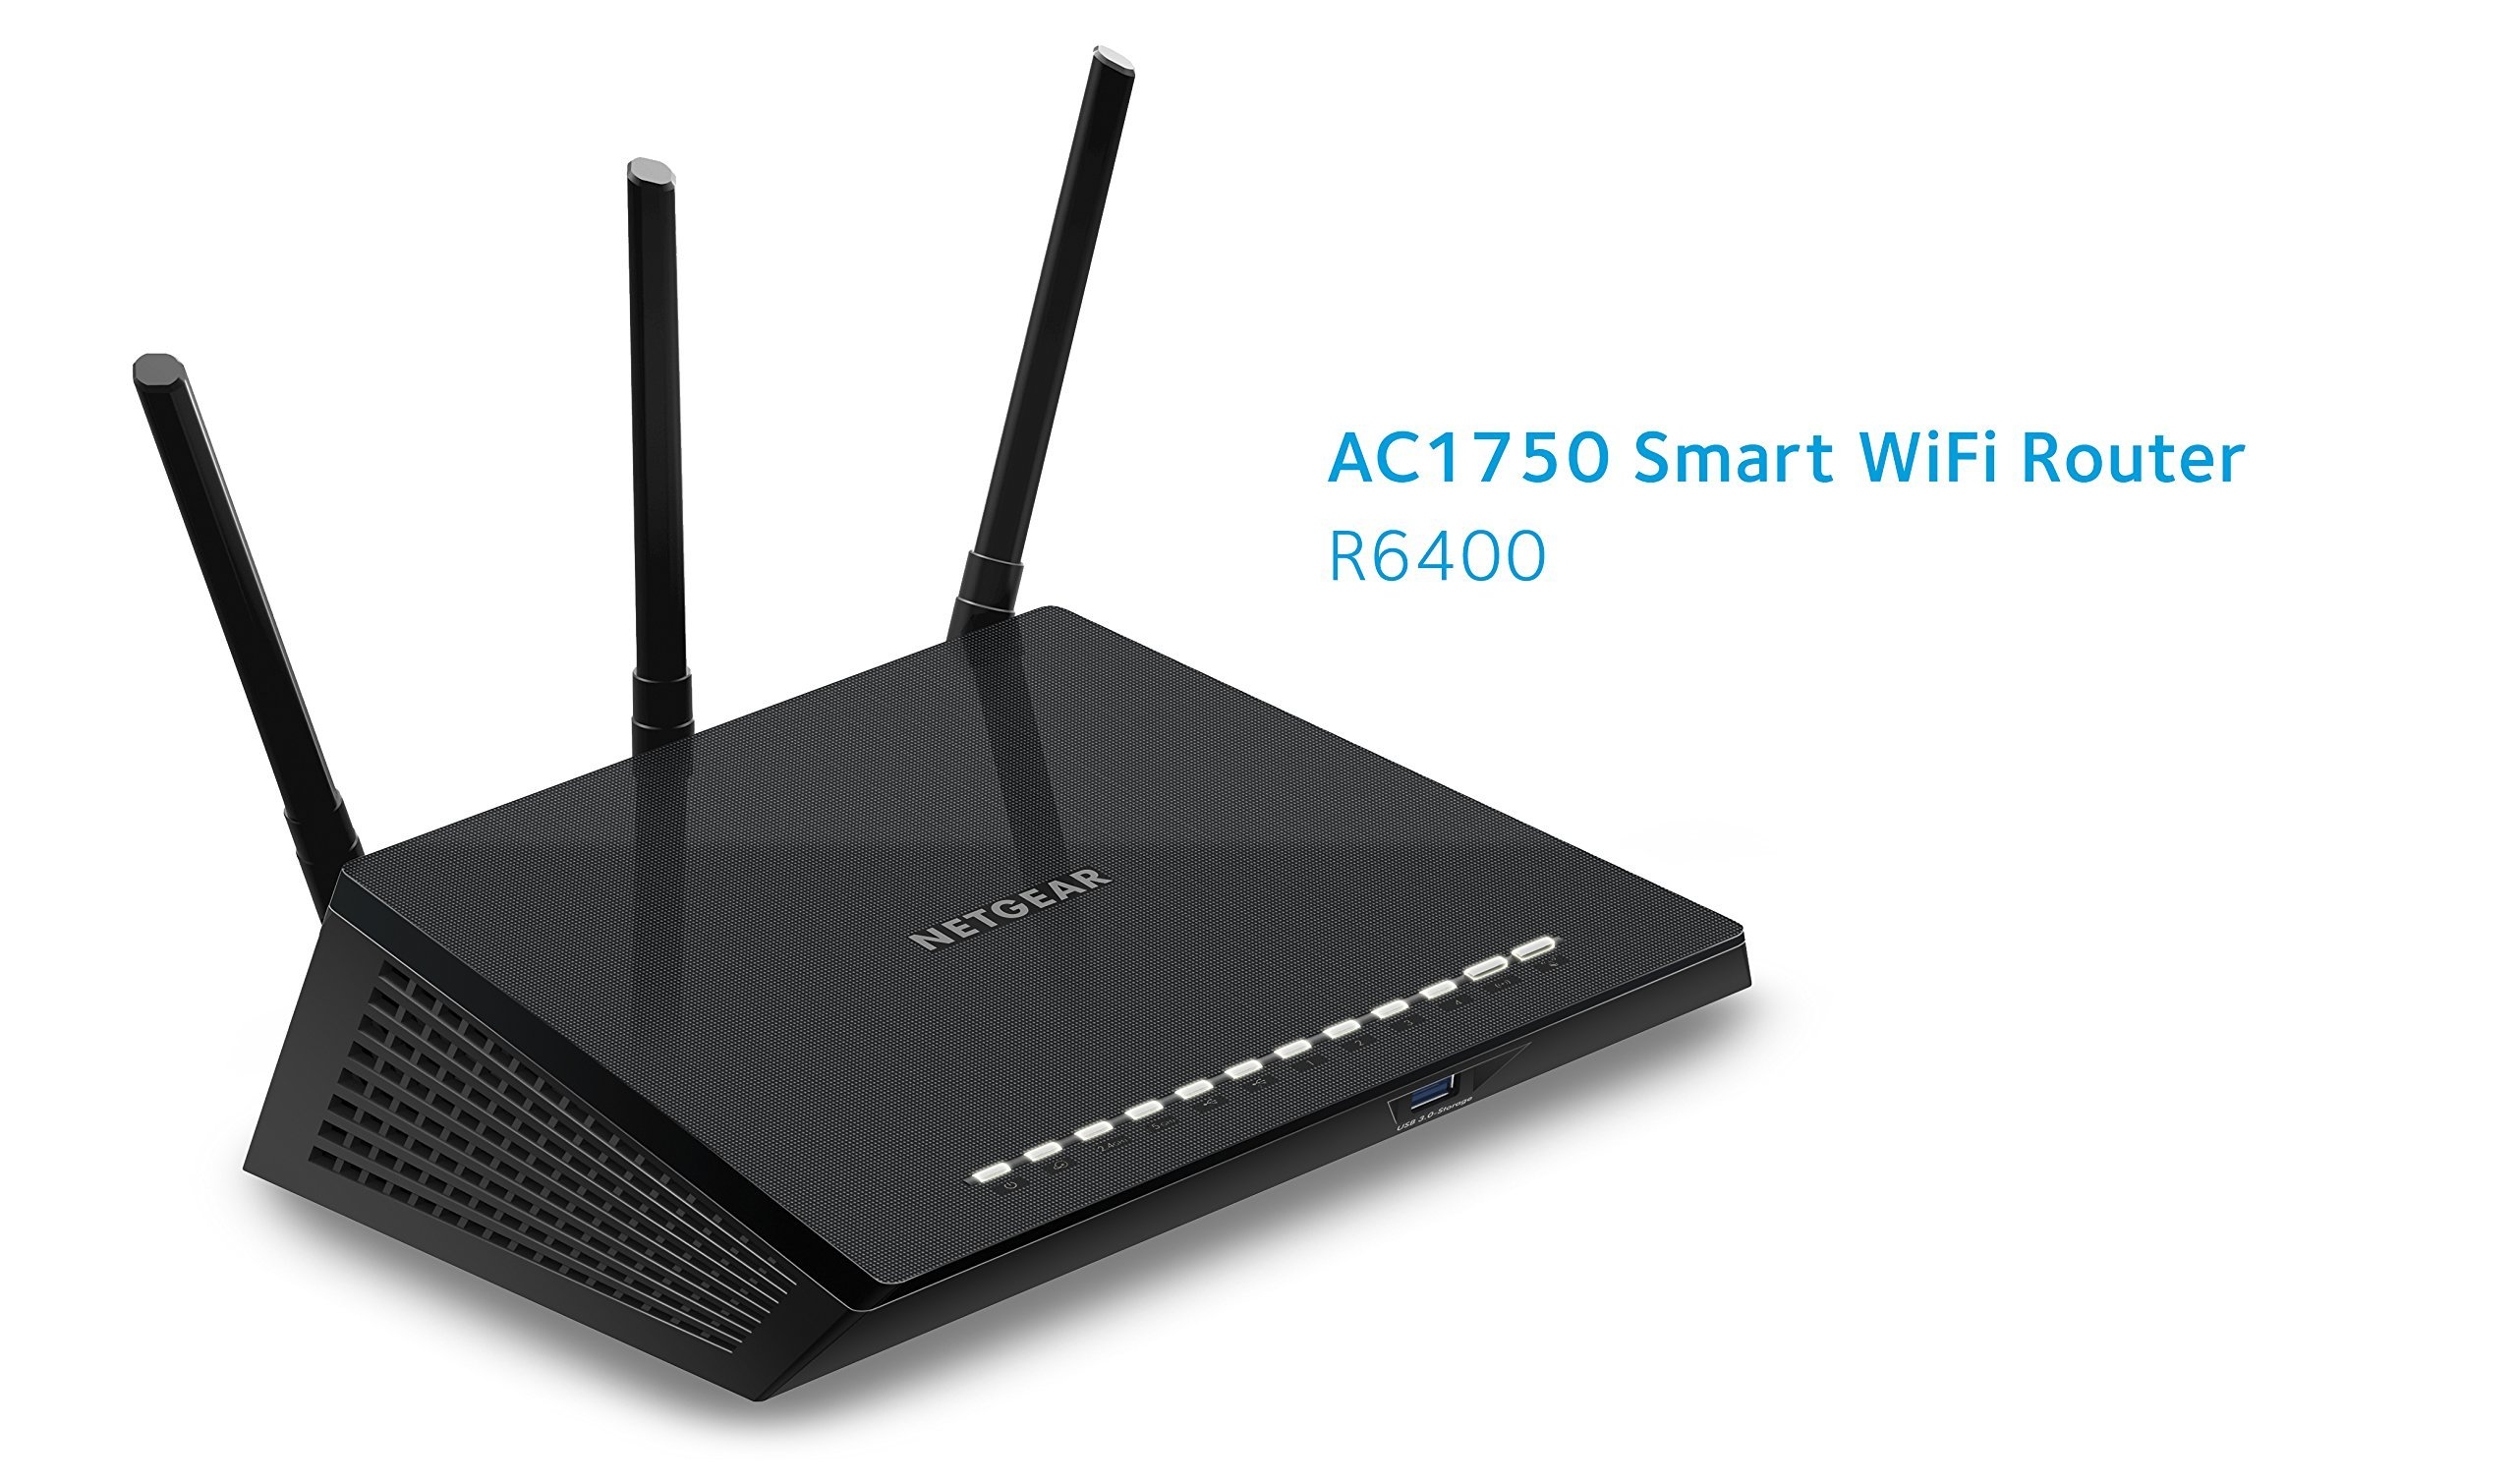 NETGEAR AC1750 Smart Wi-Fi Router, 802.11ac Dual Band Gigabit (R6400-100NAS) (Certified Refurbished) 2 AC1750 WiFi-450+1300 Mbps speeds and high-power external antennas Dual band-Reduces interference for better connections to more WiFi devices. Get up and running in minutes using your mobile device with the NETGEAR Up app.